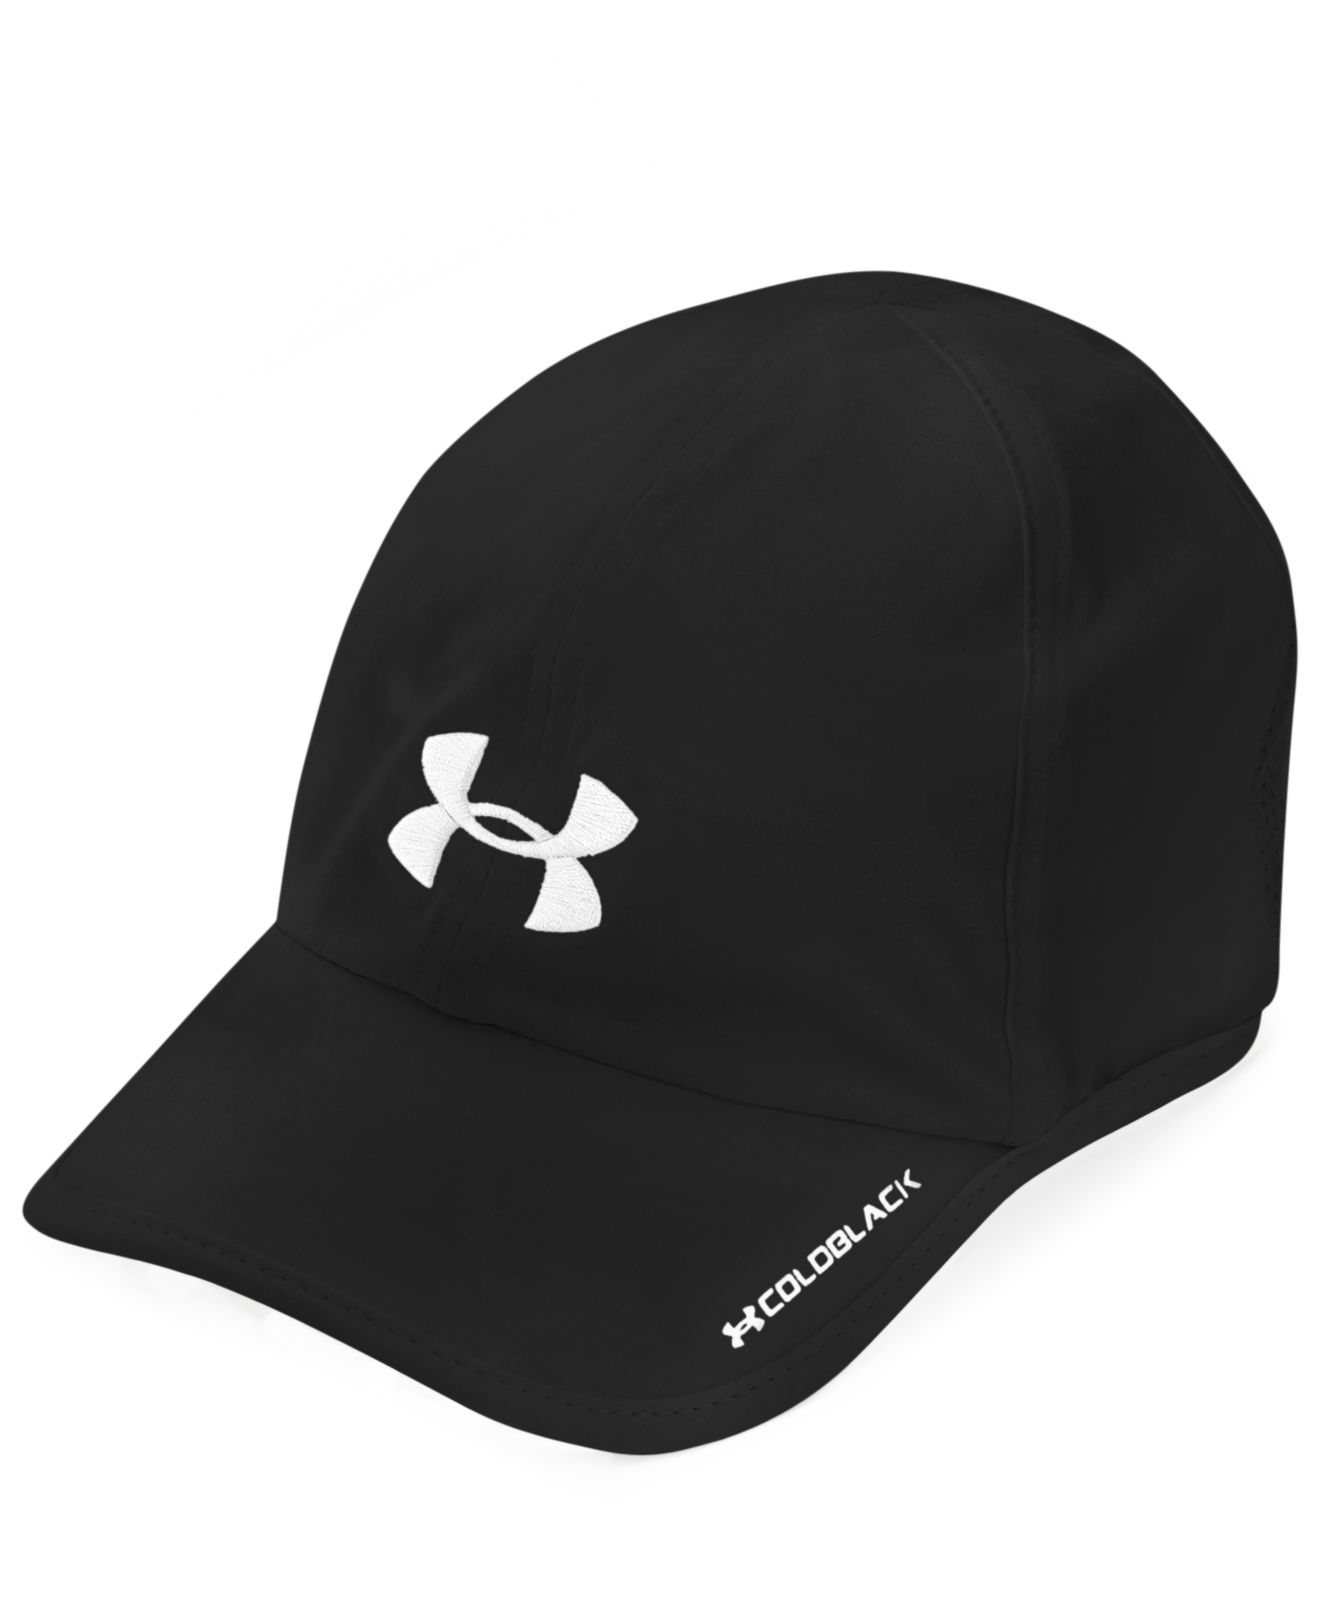 Lyst - Under Armour Shadow Sport Cap in Black 155d4efe6e5